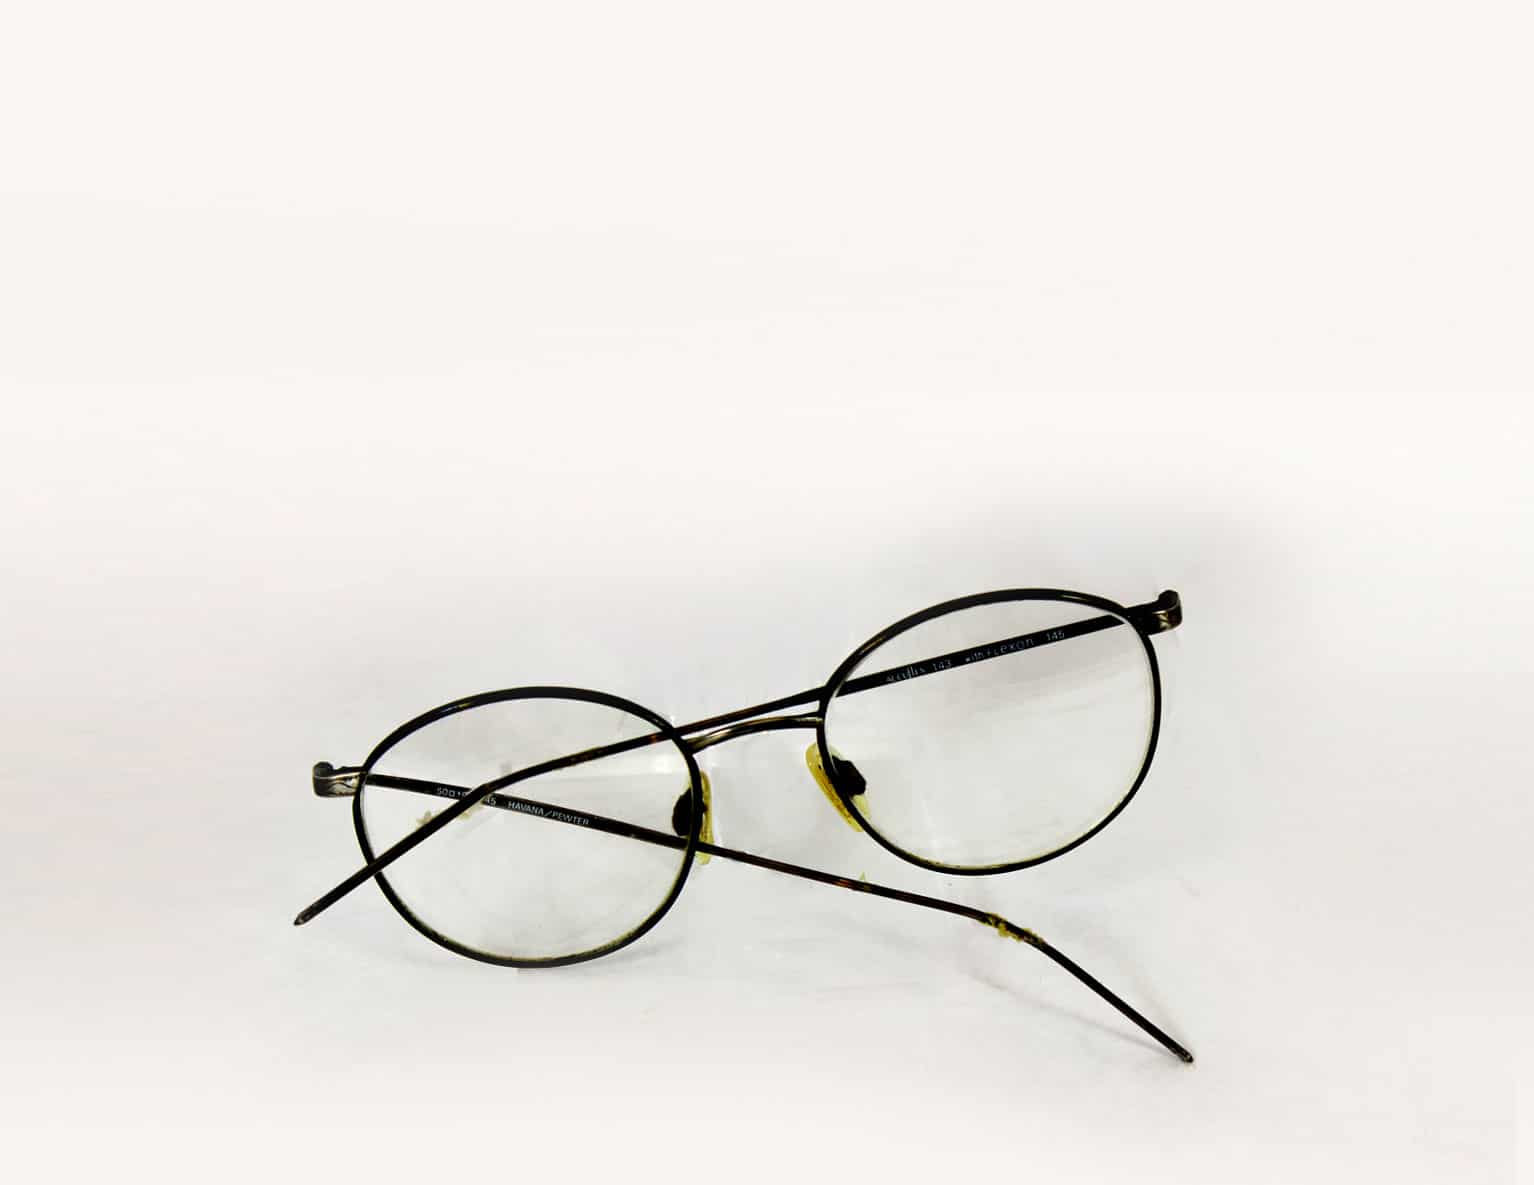 Glasses Frames Bent : Adjusting bent eyewear